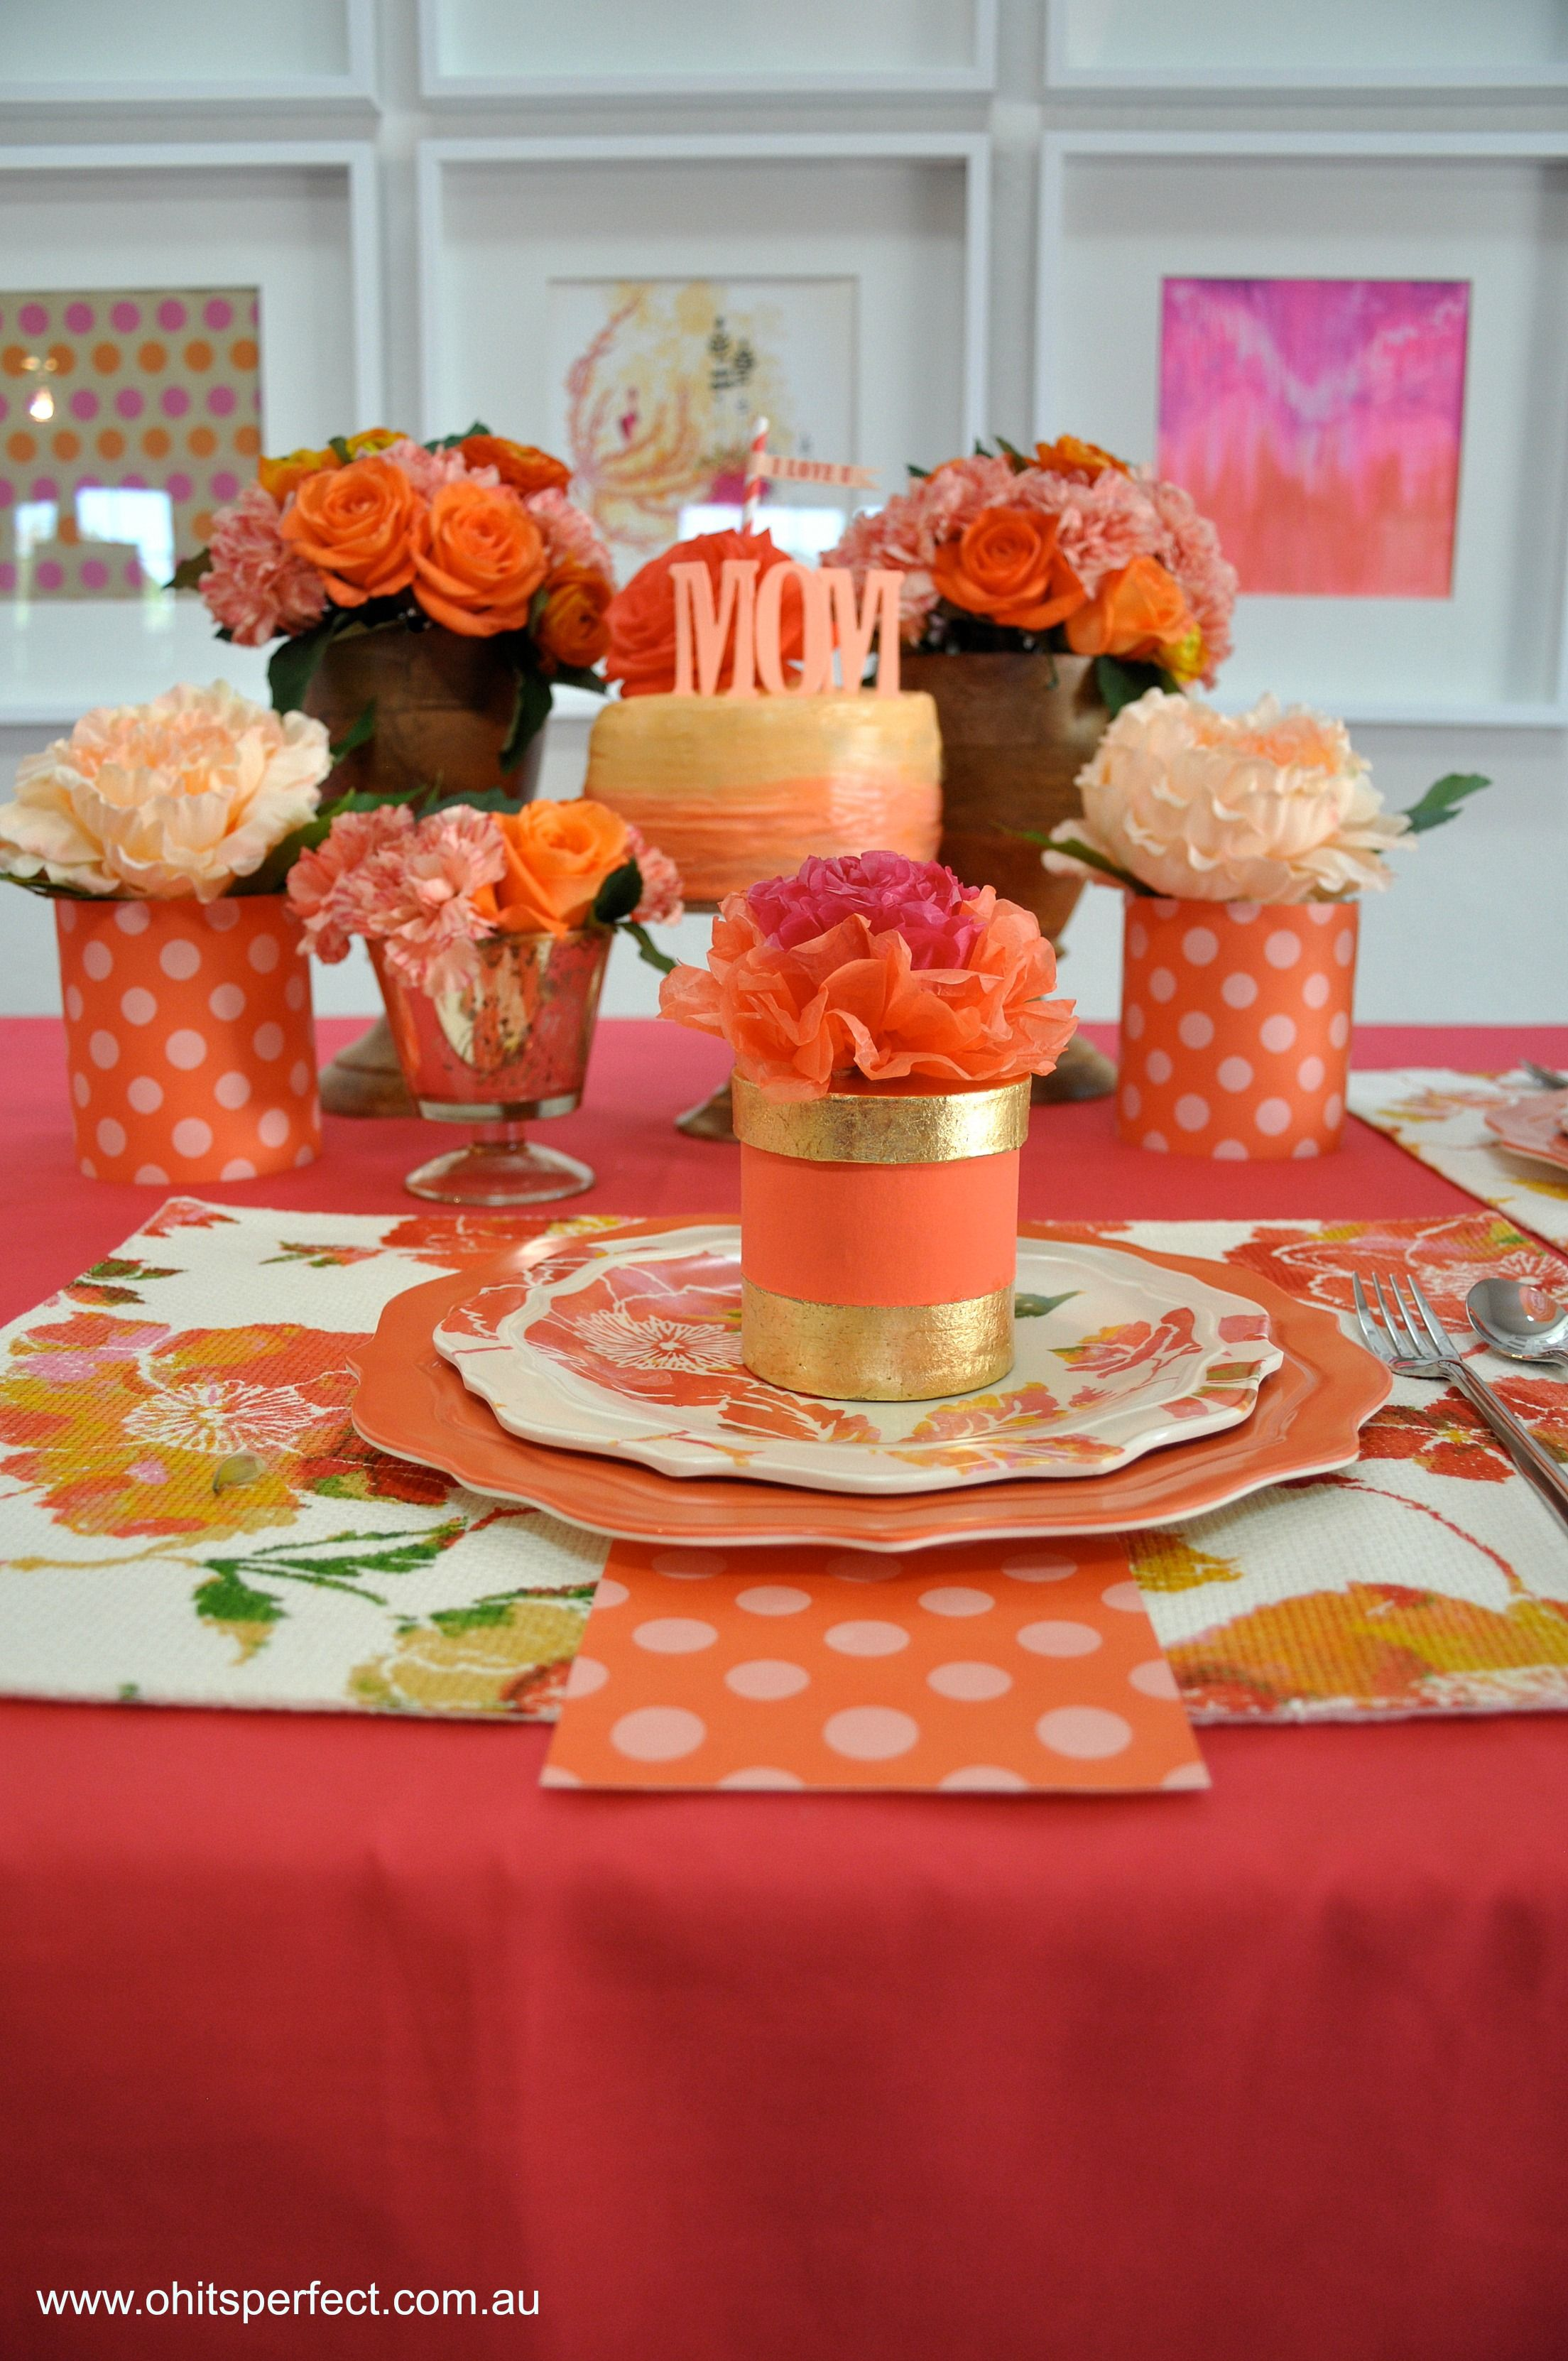 U201cMay Flowersu201d Motheru0027s Day Tablescape From House Of Creative Designs